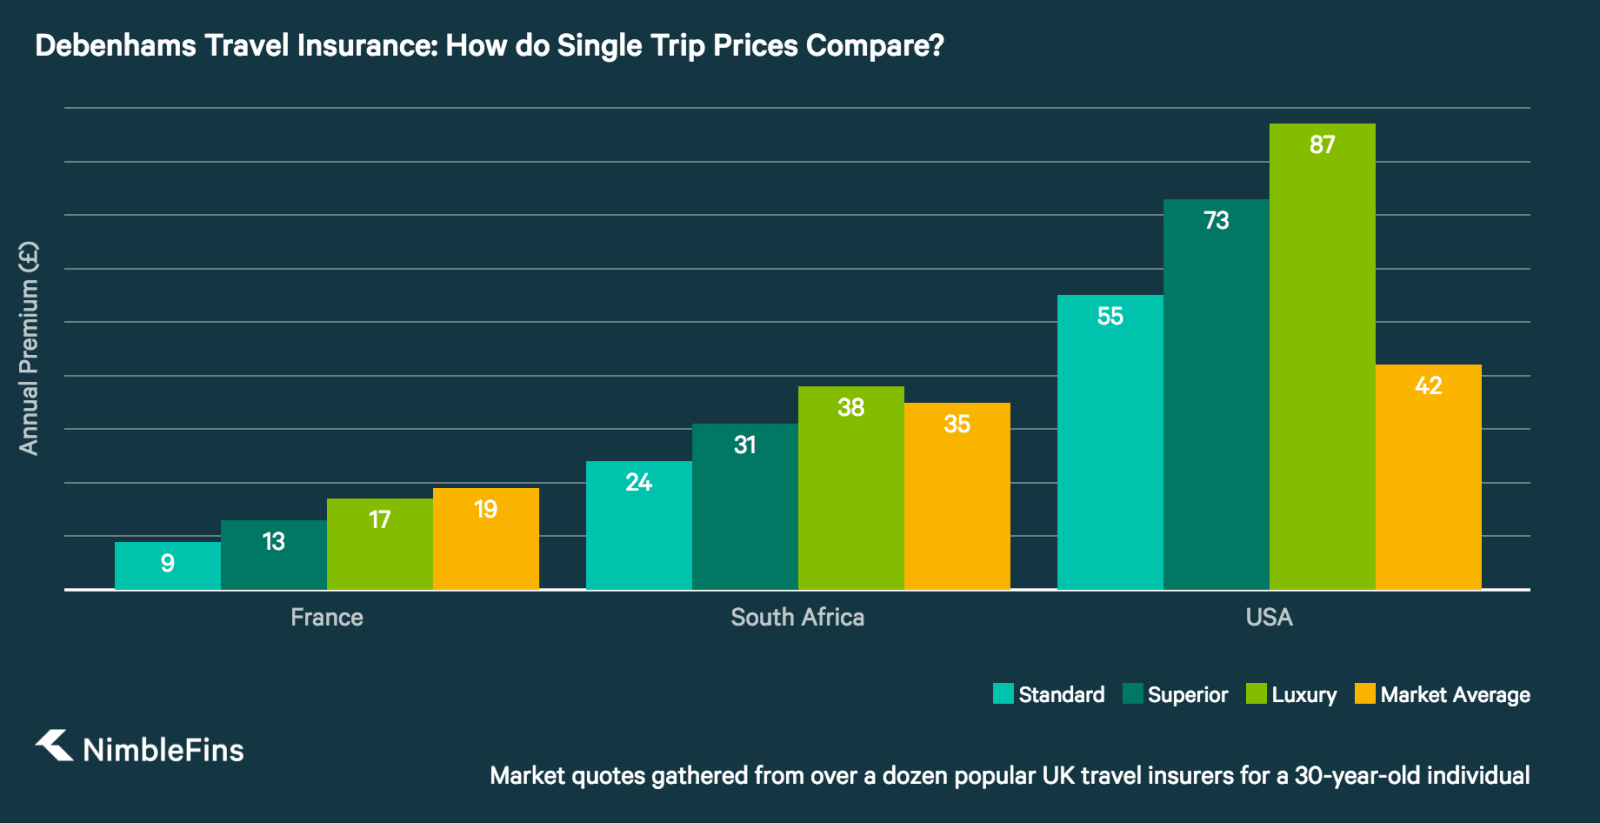 chart showing Debenhams single-trip travel insurance prices compared to market averages